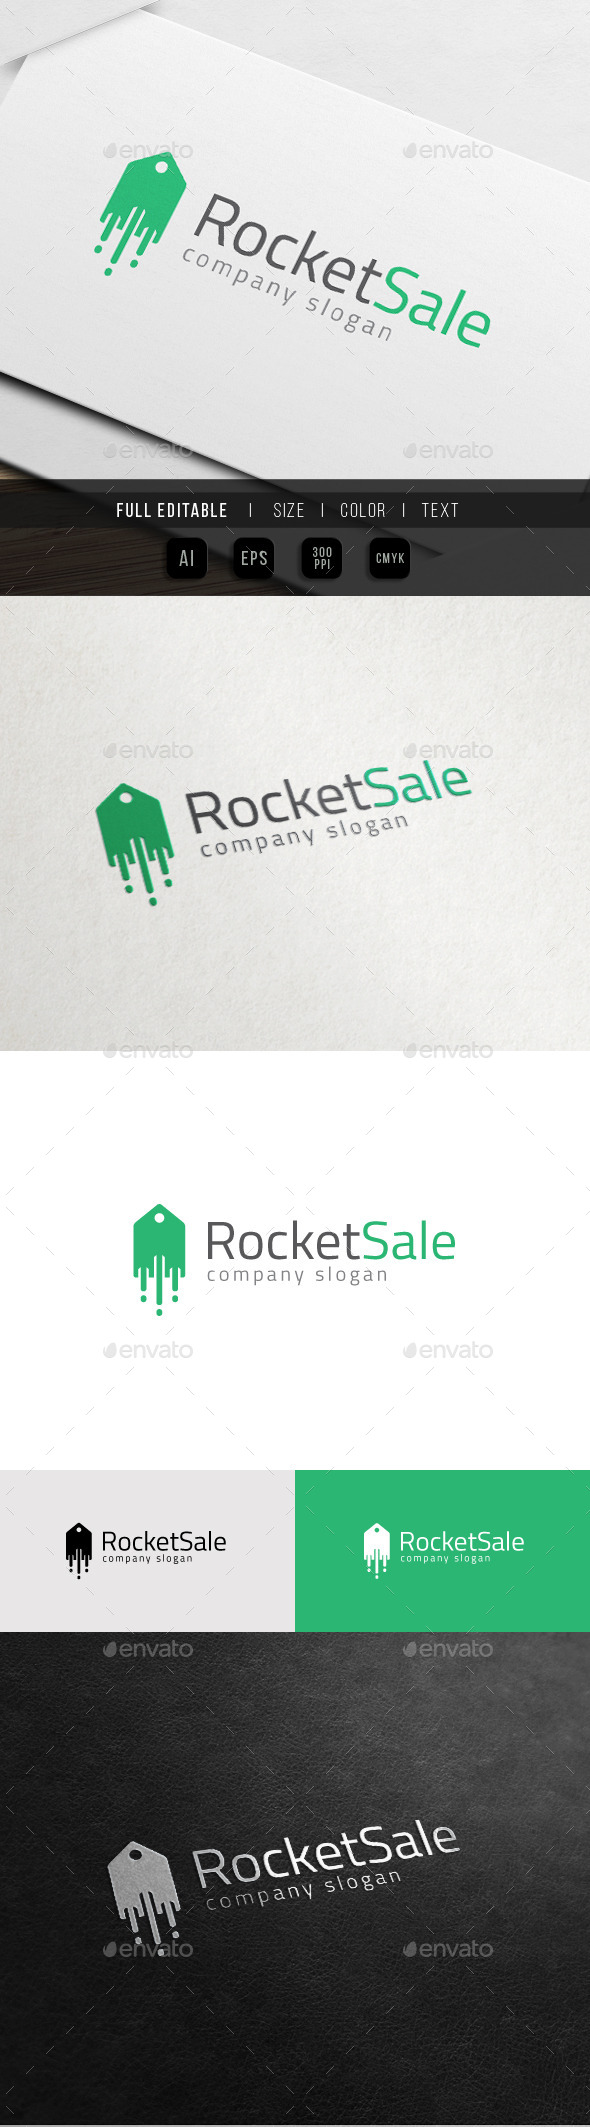 GraphicRiver Rocket seller Fast Discount Store Launch 10988013